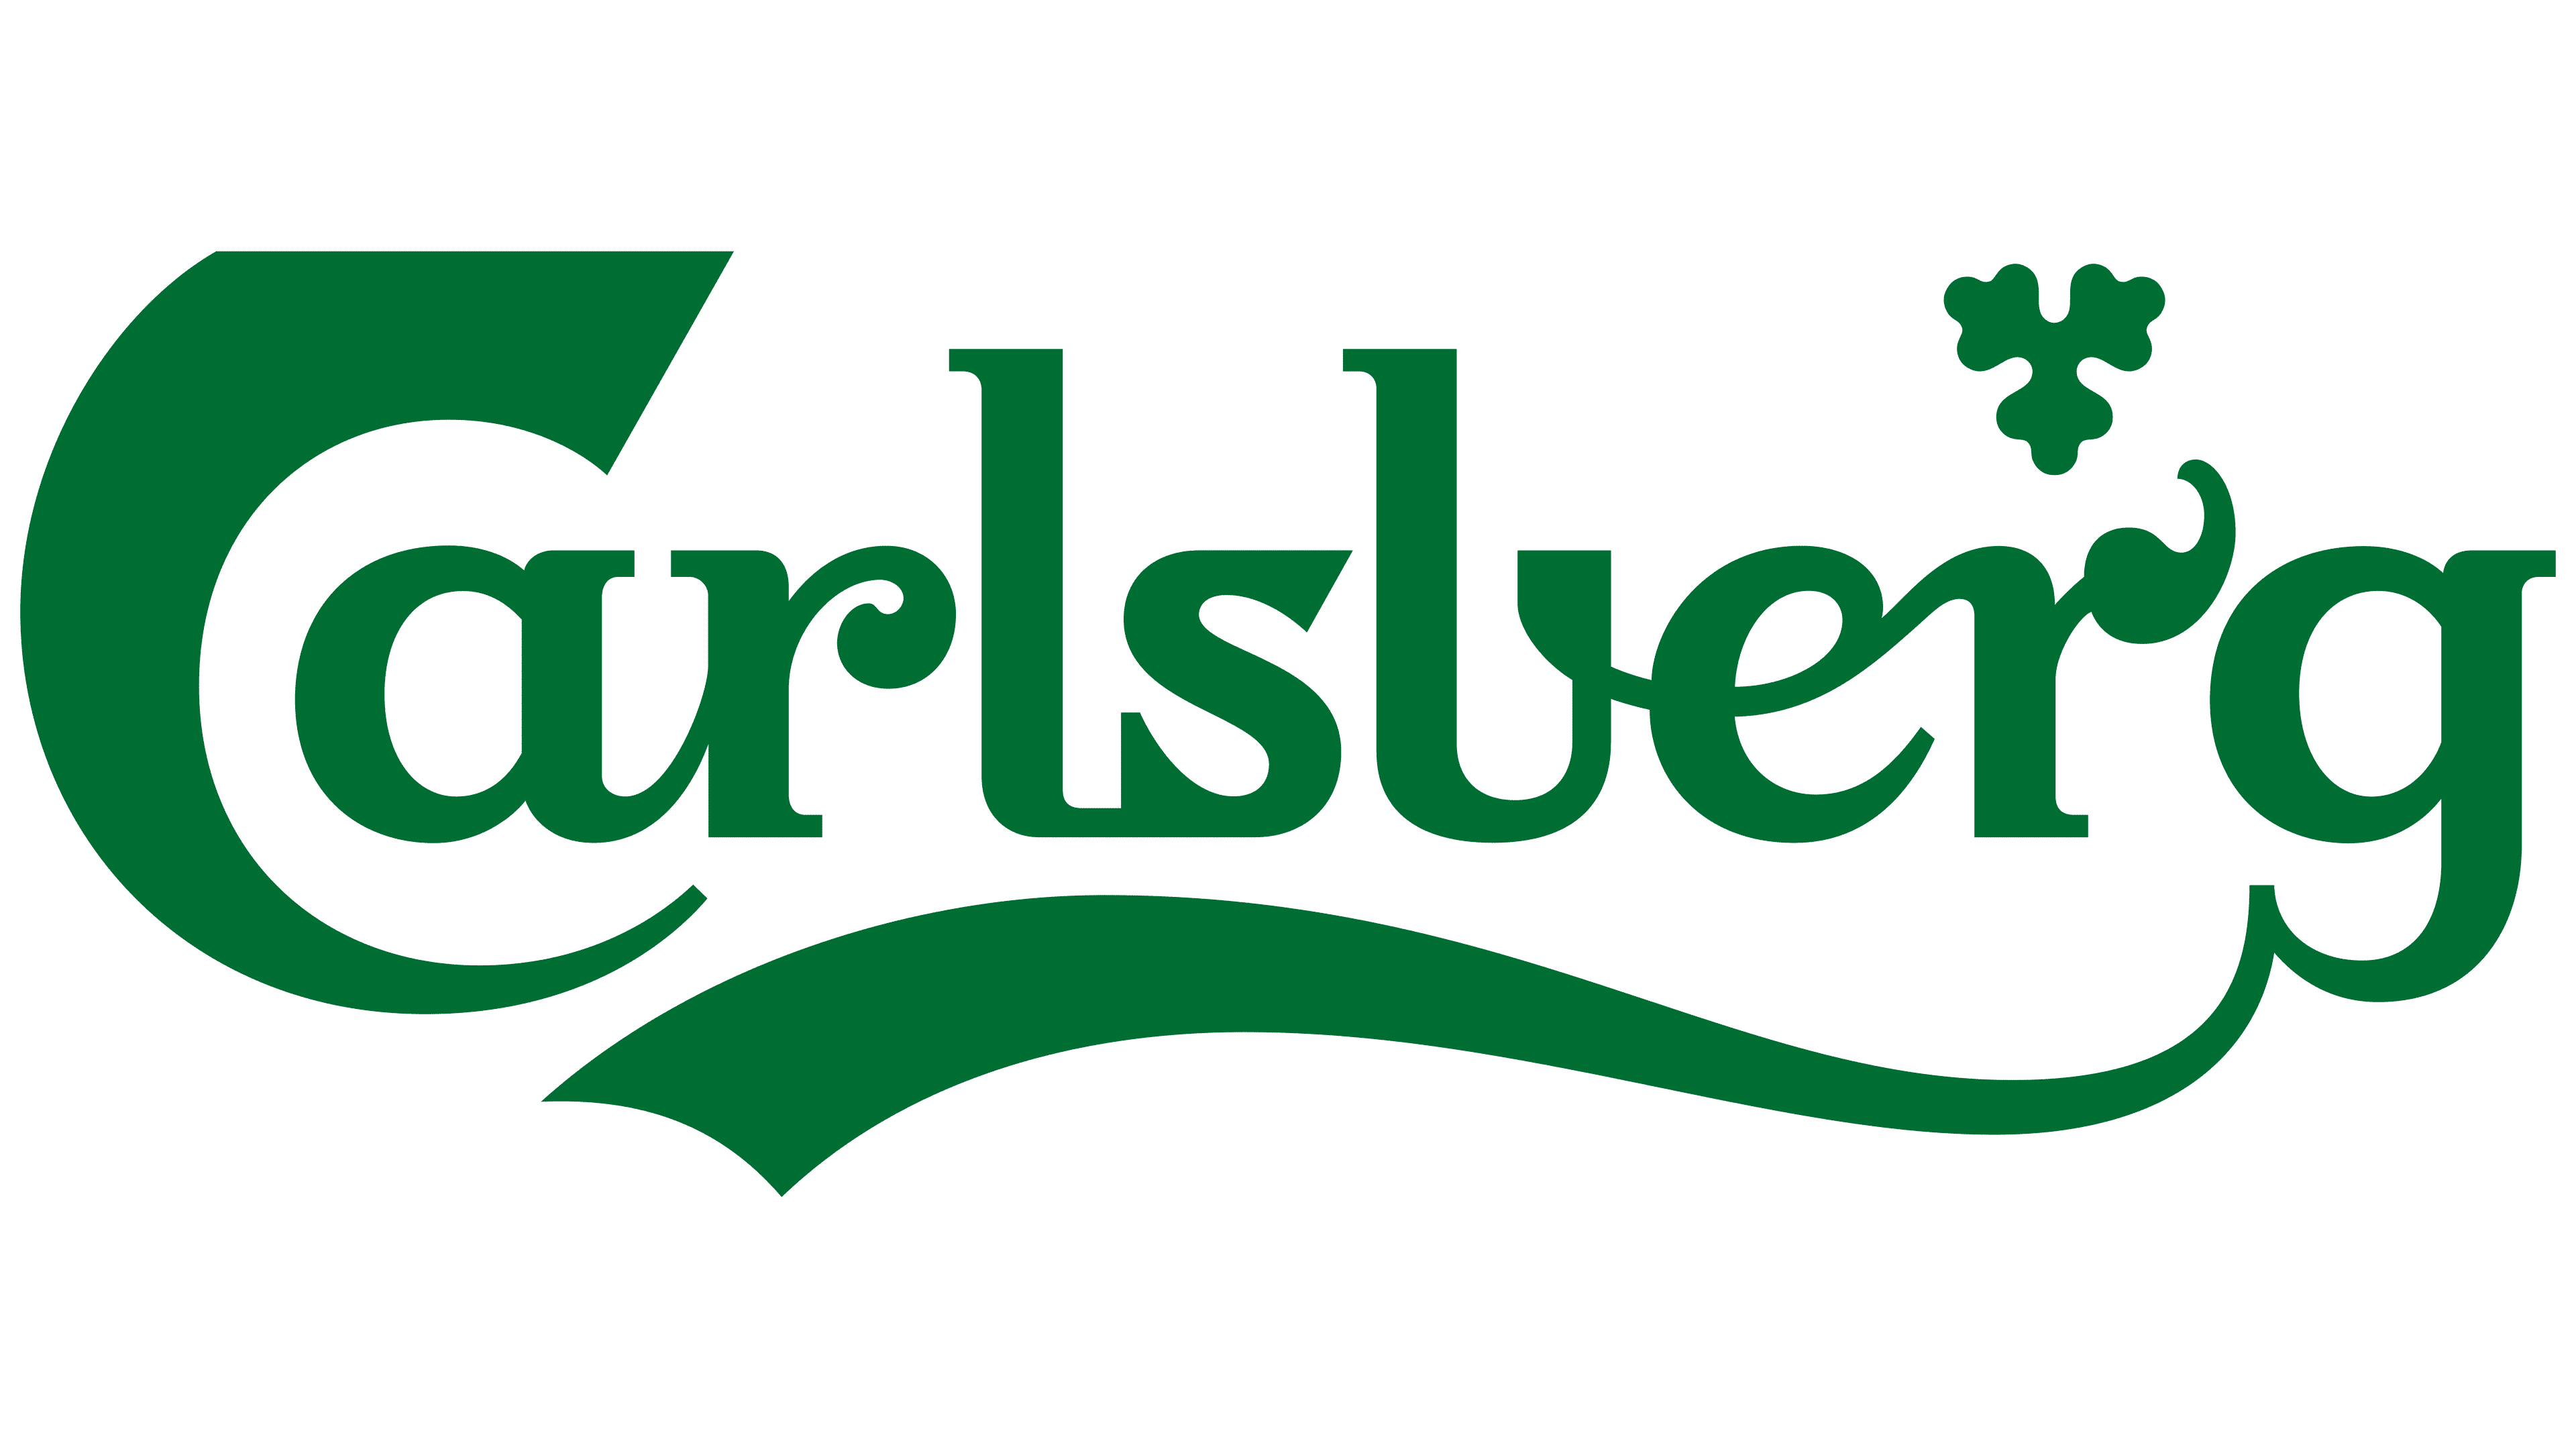 Carlsberg Pack Competition